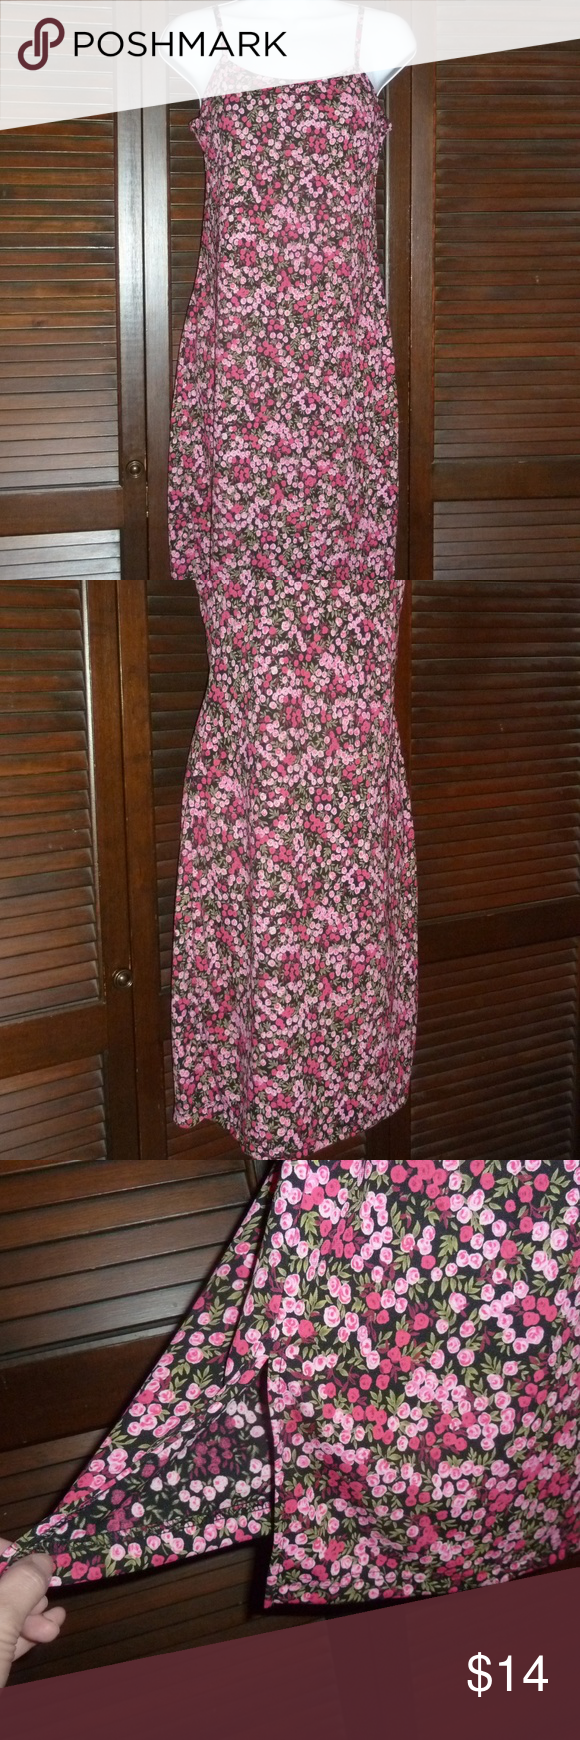 "BYER TOO! Short Floral Dress, Red Pink Roses, L RED & PINK ROSES, SLEEVELESS SPAGHETTI STRAP DRESS By BYER TOO!, SIZE LARGE  Very cute dress in great condition. Has 6"" slits up each side of the skirt. The bust is lined. The straps are non-adjustable. Material has some stretch. Easy pull on style. No zippers or buttons.  Length: approx. 39"" (about knee length)    Waist: about 14"" across, lying flat  100% Polyester, Machine Wash Cold Byer Too! Dresses"